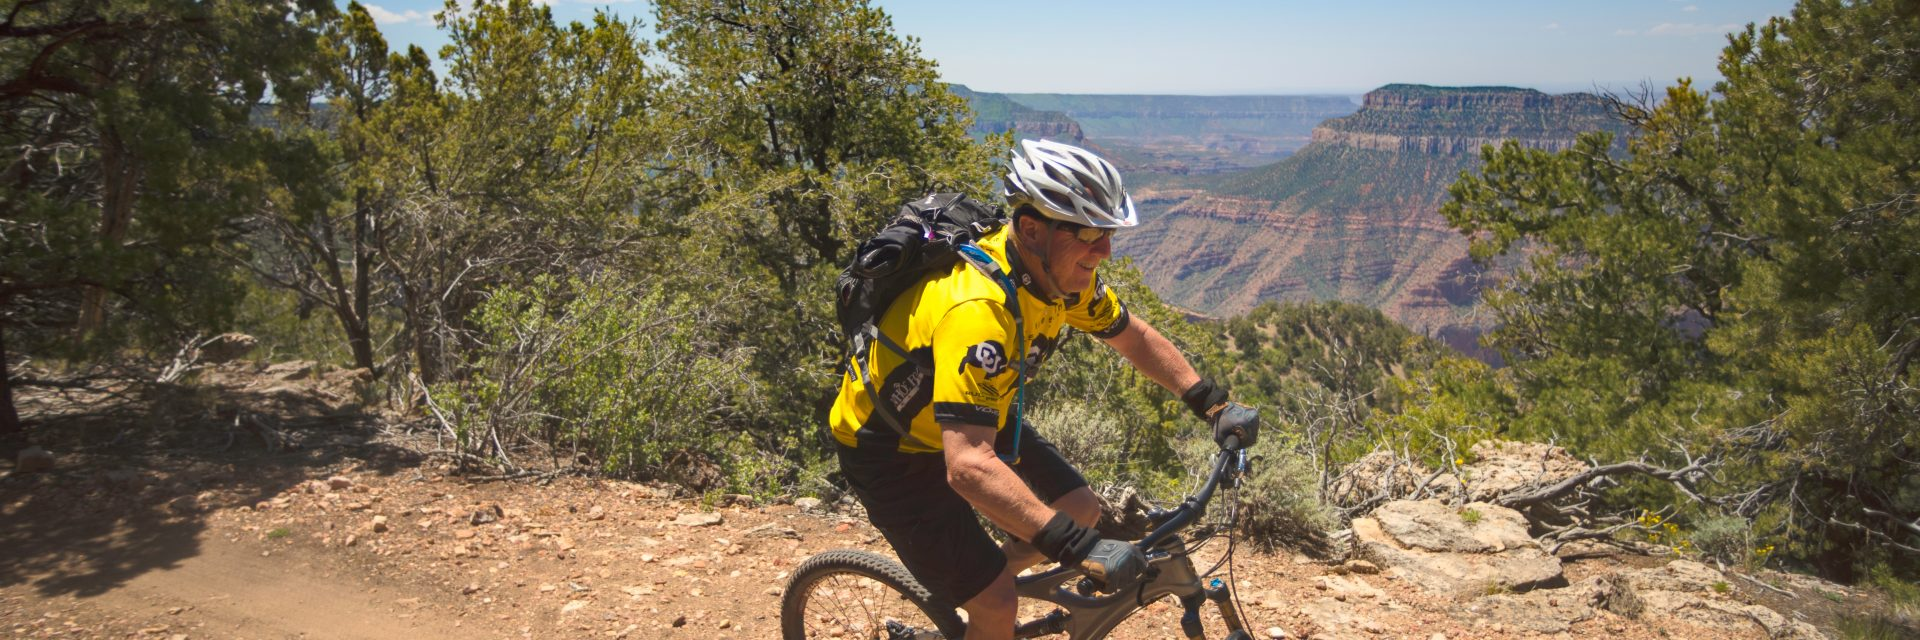 Mountain biking past Locust Point, North Rim of the Grand Canyon